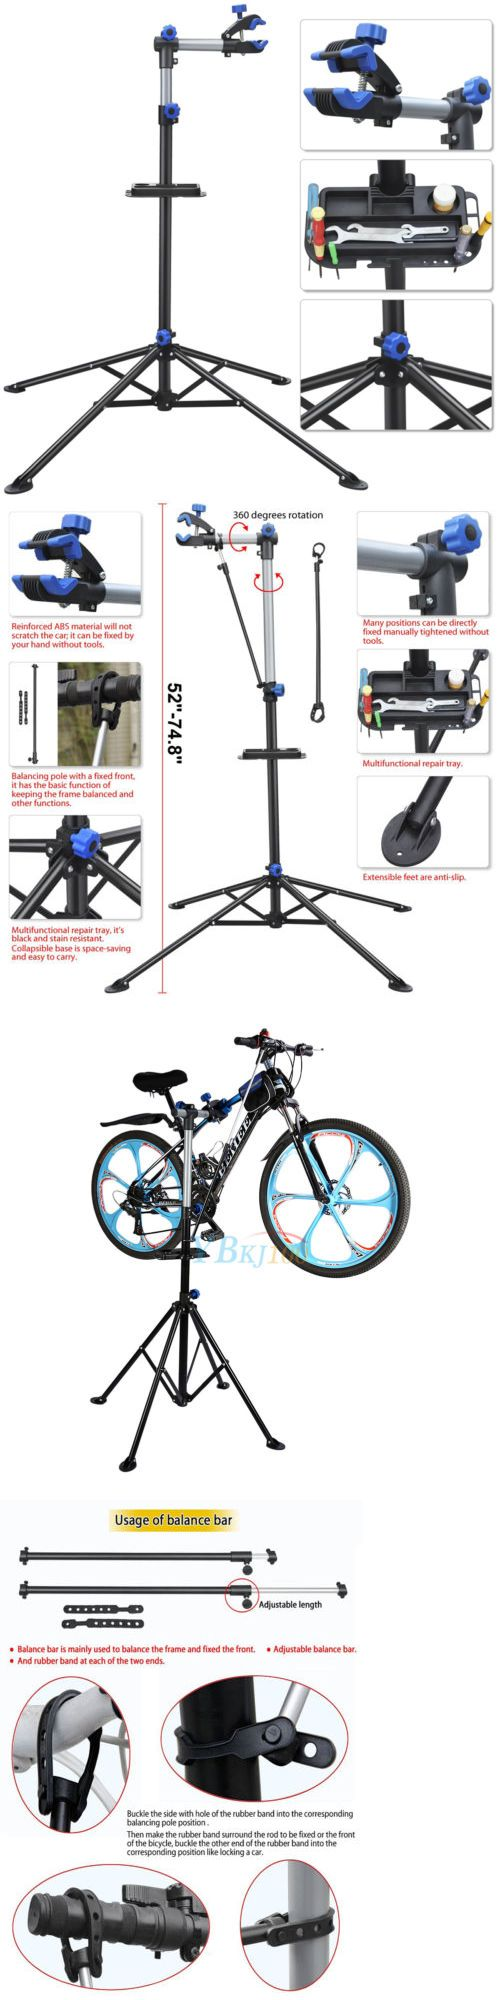 Workstands 177847: Pro Bike Adjustable 41 To 75 Repair Stand W/ Telescopic Arm Cycle Bicycle Rack -> BUY IT NOW ONLY: $38.94 on eBay!